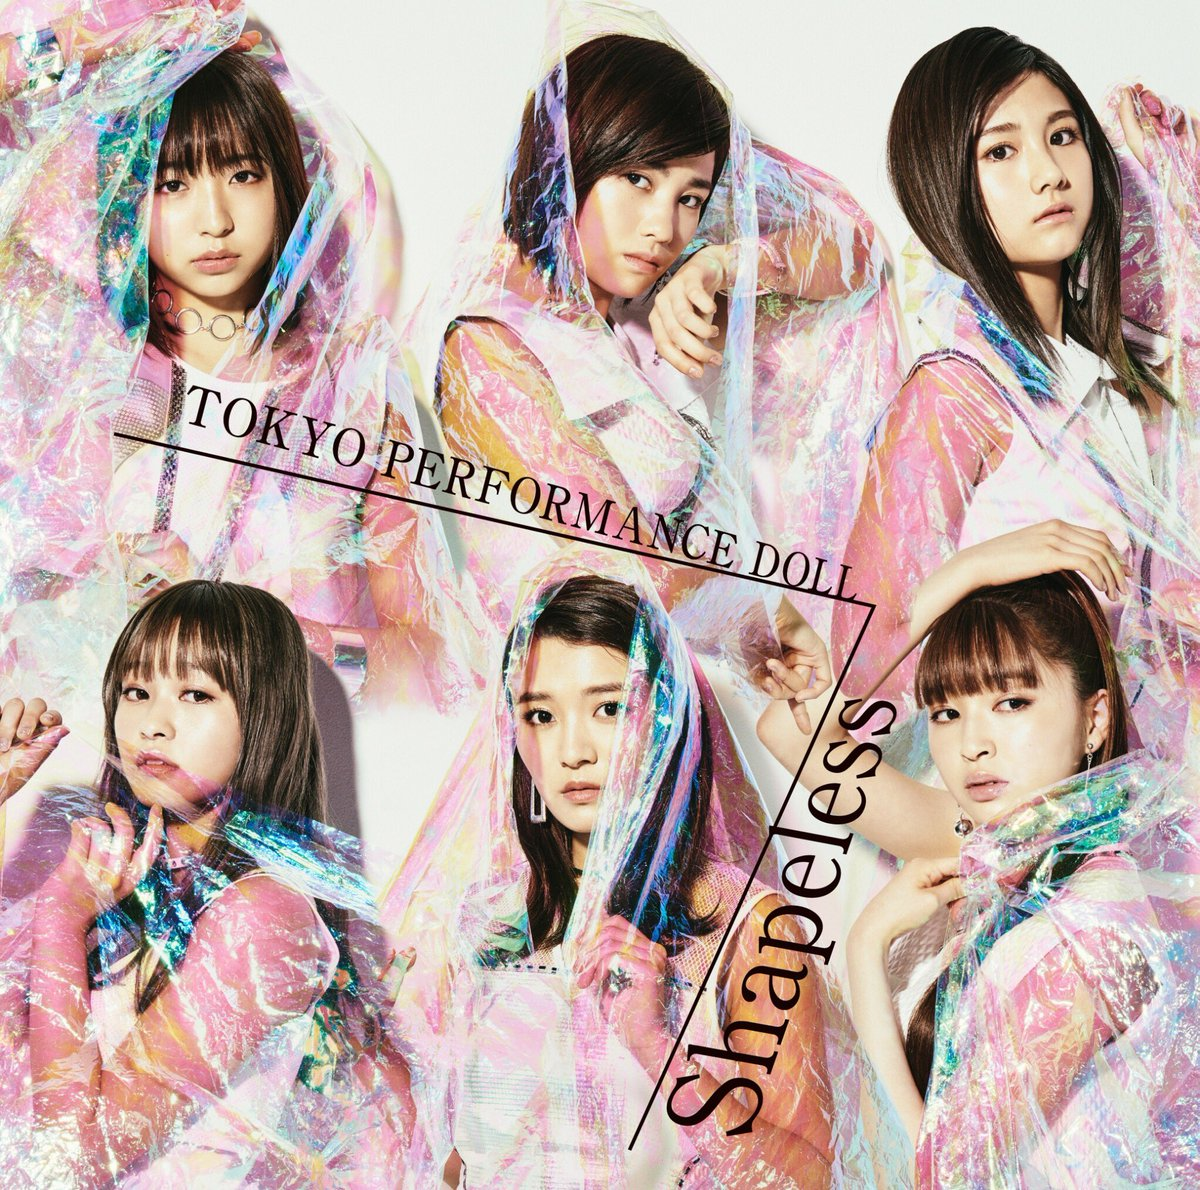 20180724.0634.06 Tokyo Performance Doll - Shapeless (Type A) cover 1.jpg